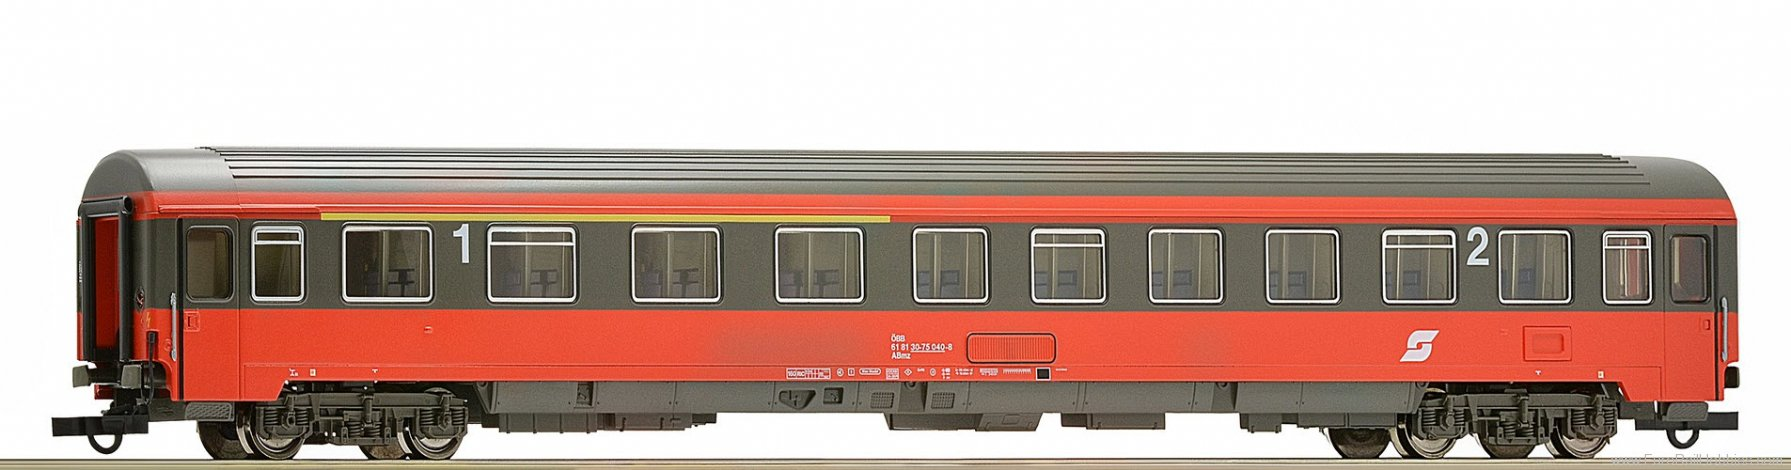 Roco 44645 1st/2nd class passenger carriage, OBB